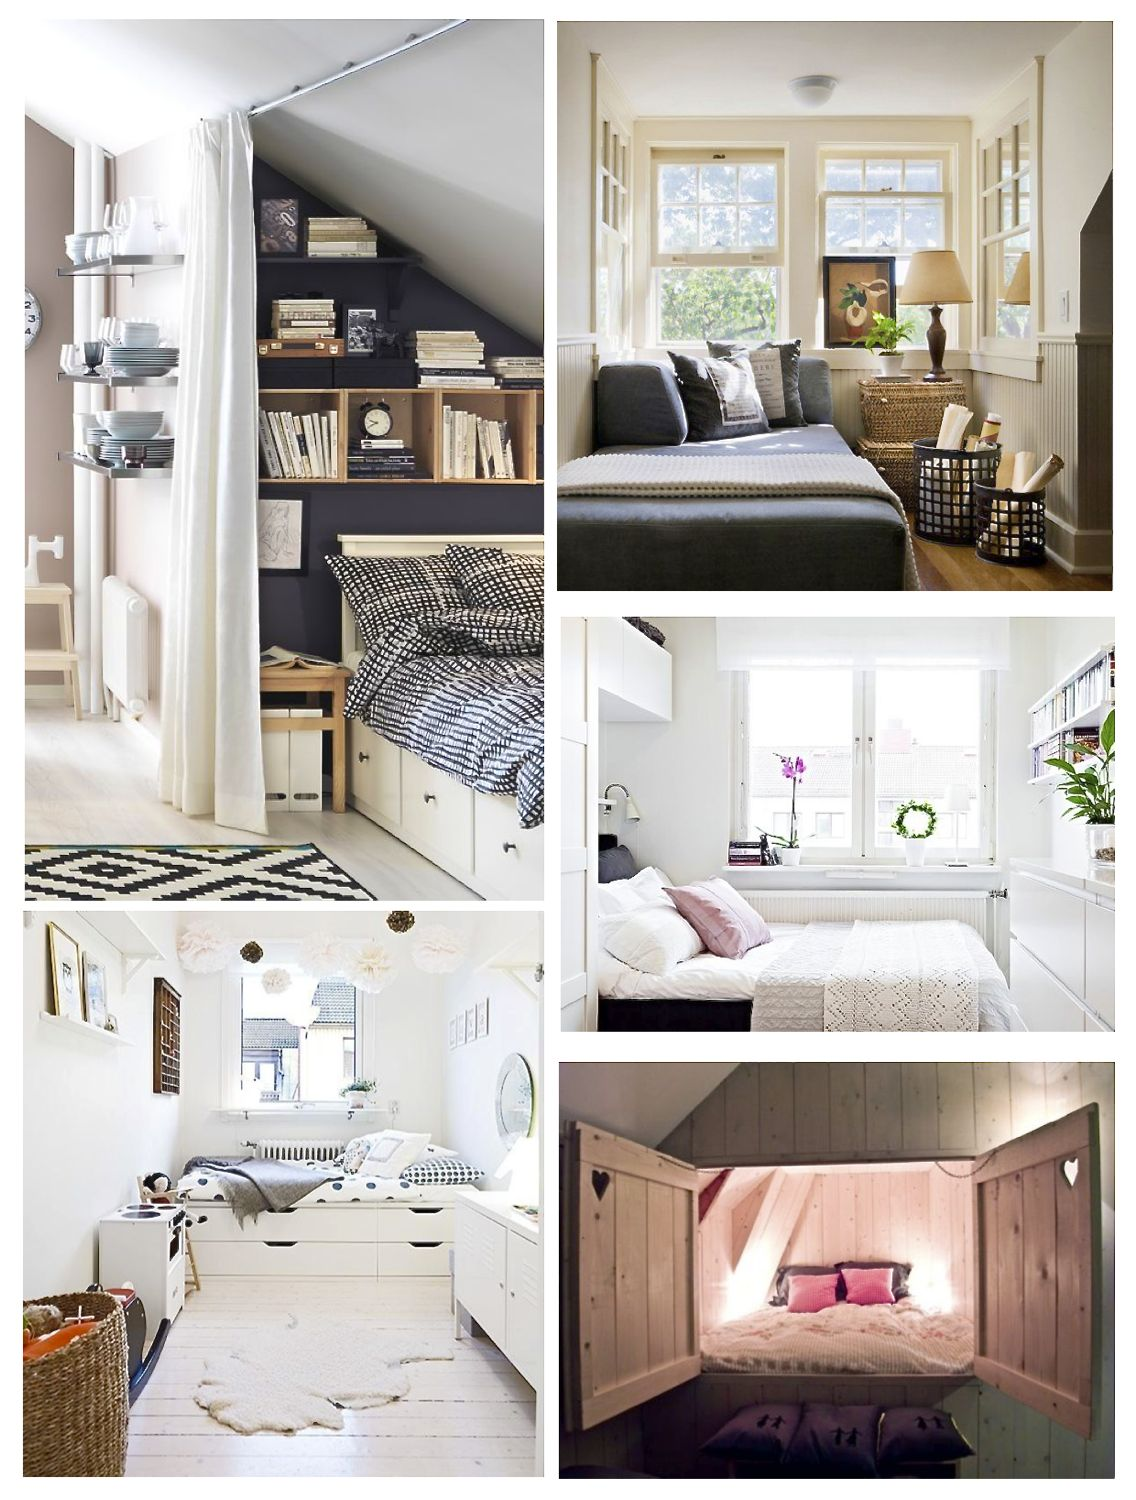 tiny-bedroom-ideas-small-bedroom-ideas-style-barista